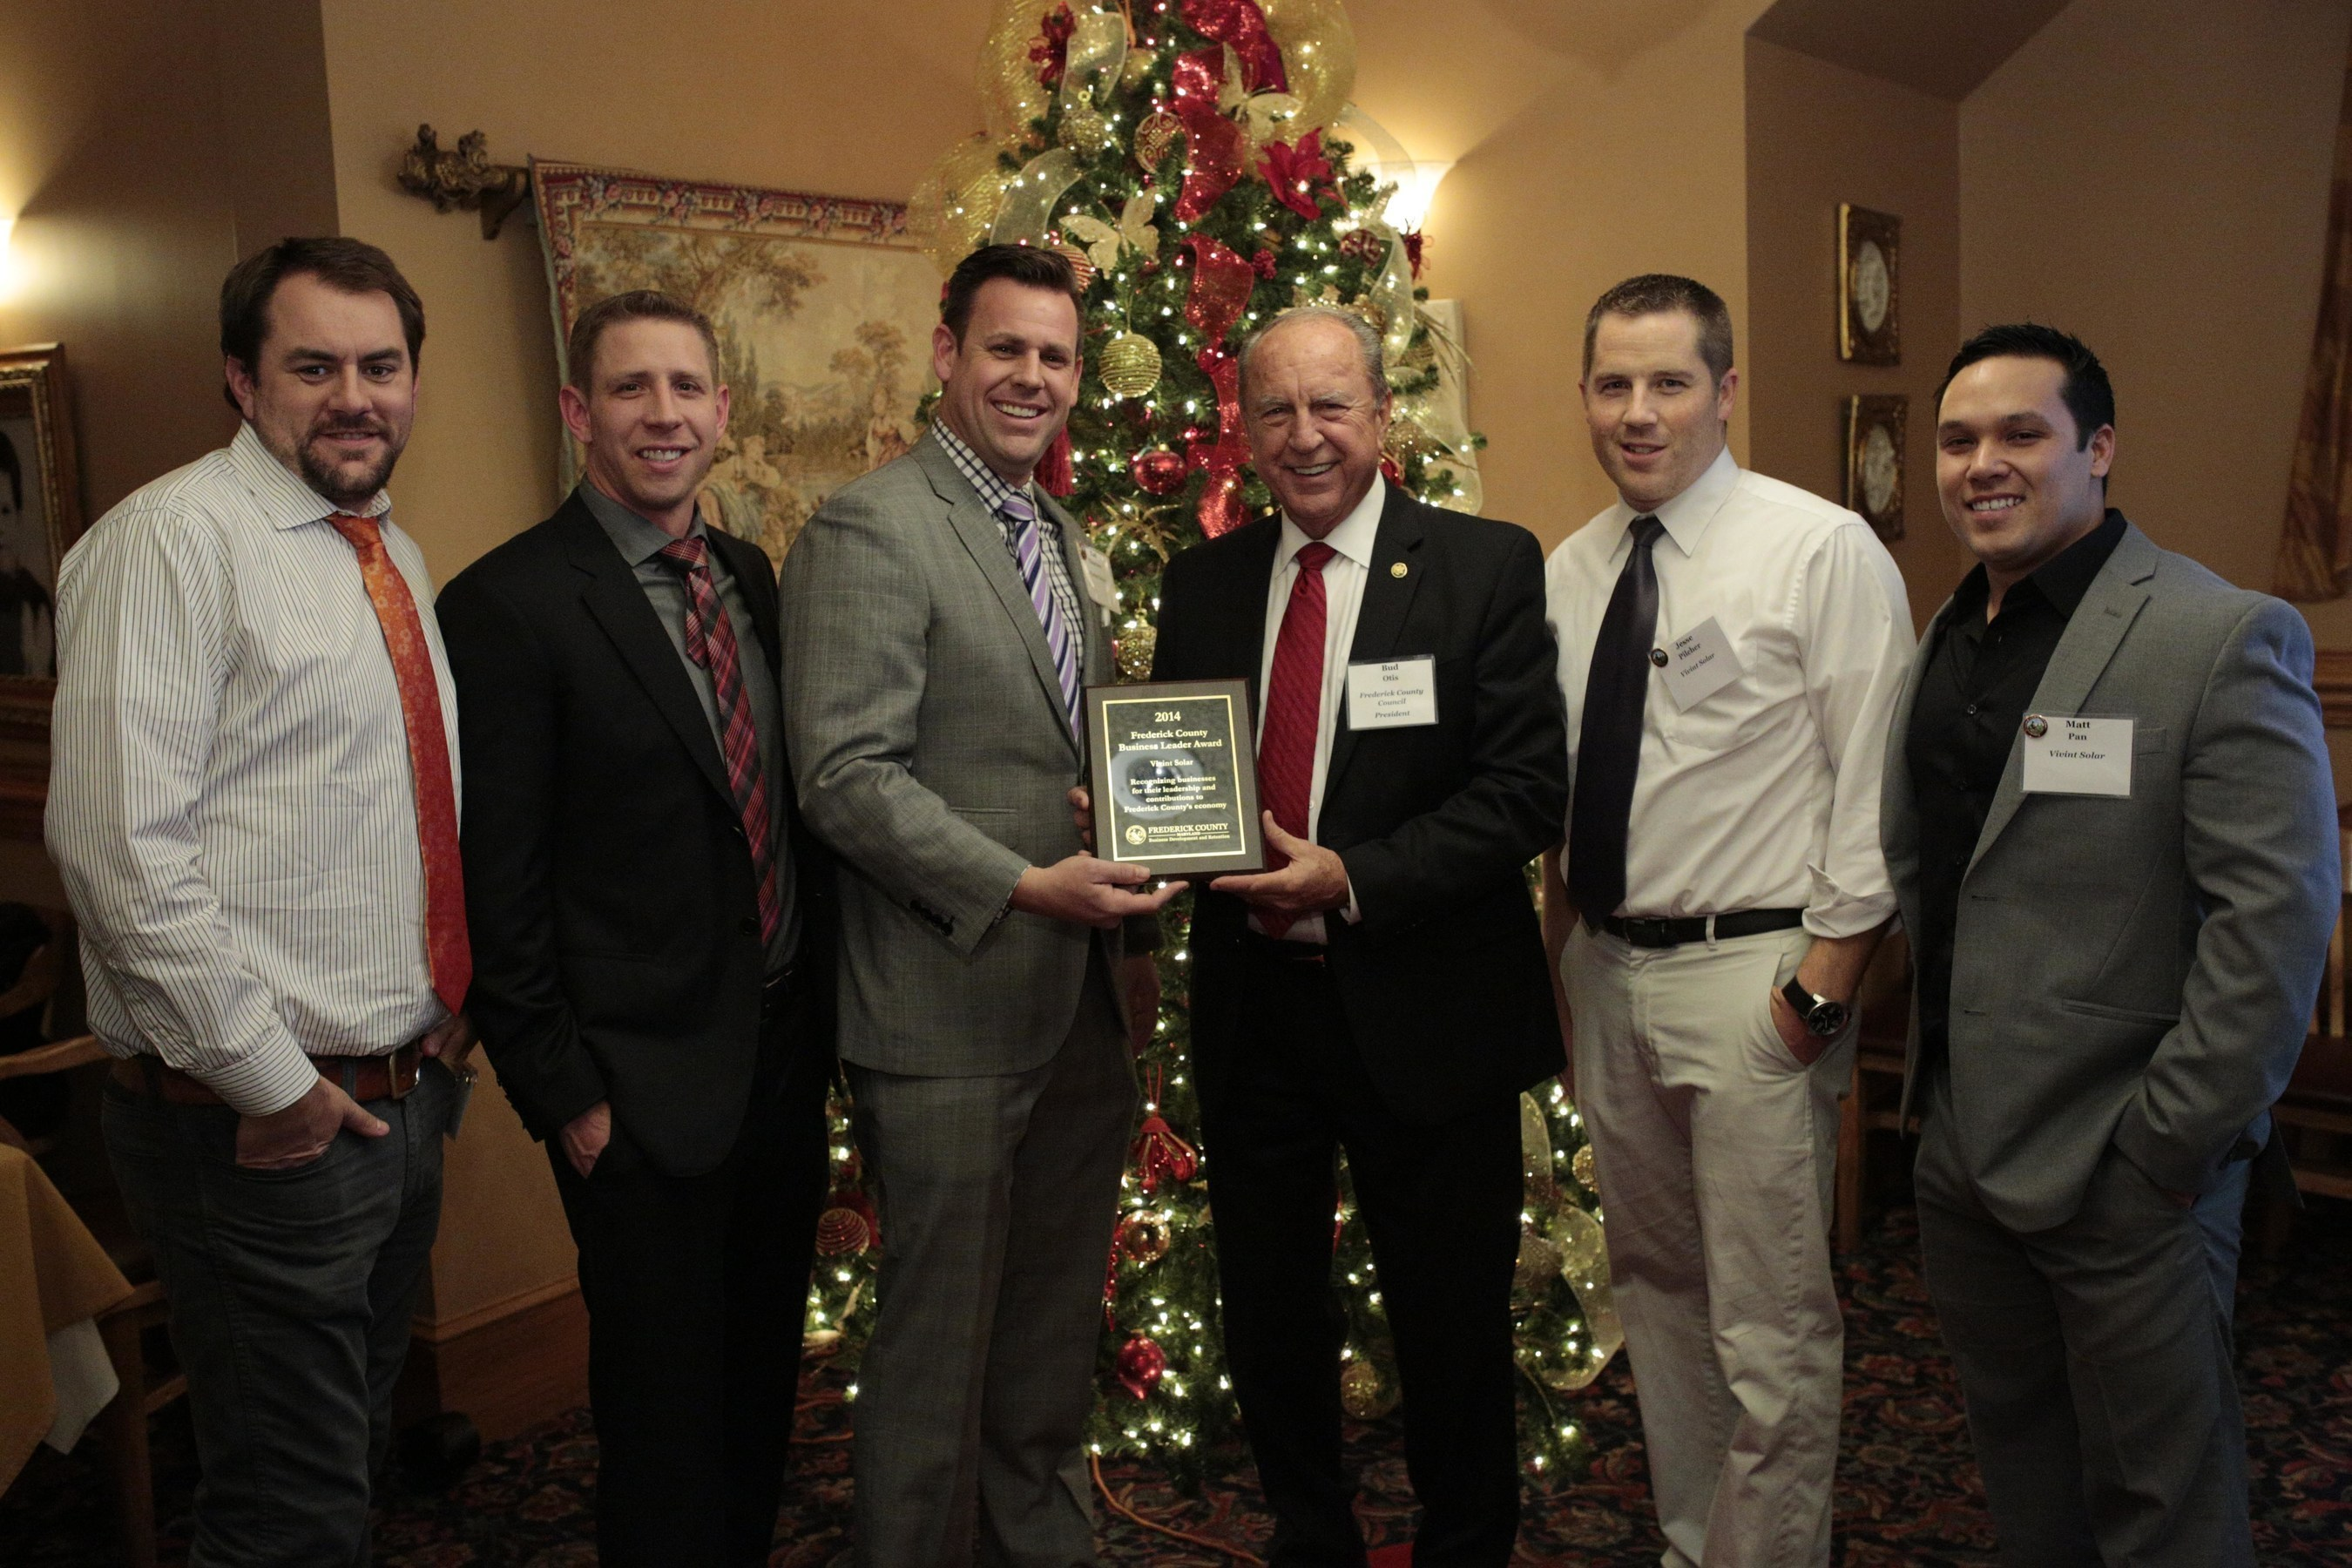 Vivint Solar District Manager Tad Thueson receives Frederick County new business award from Bud Otis, President of Frederick County Council